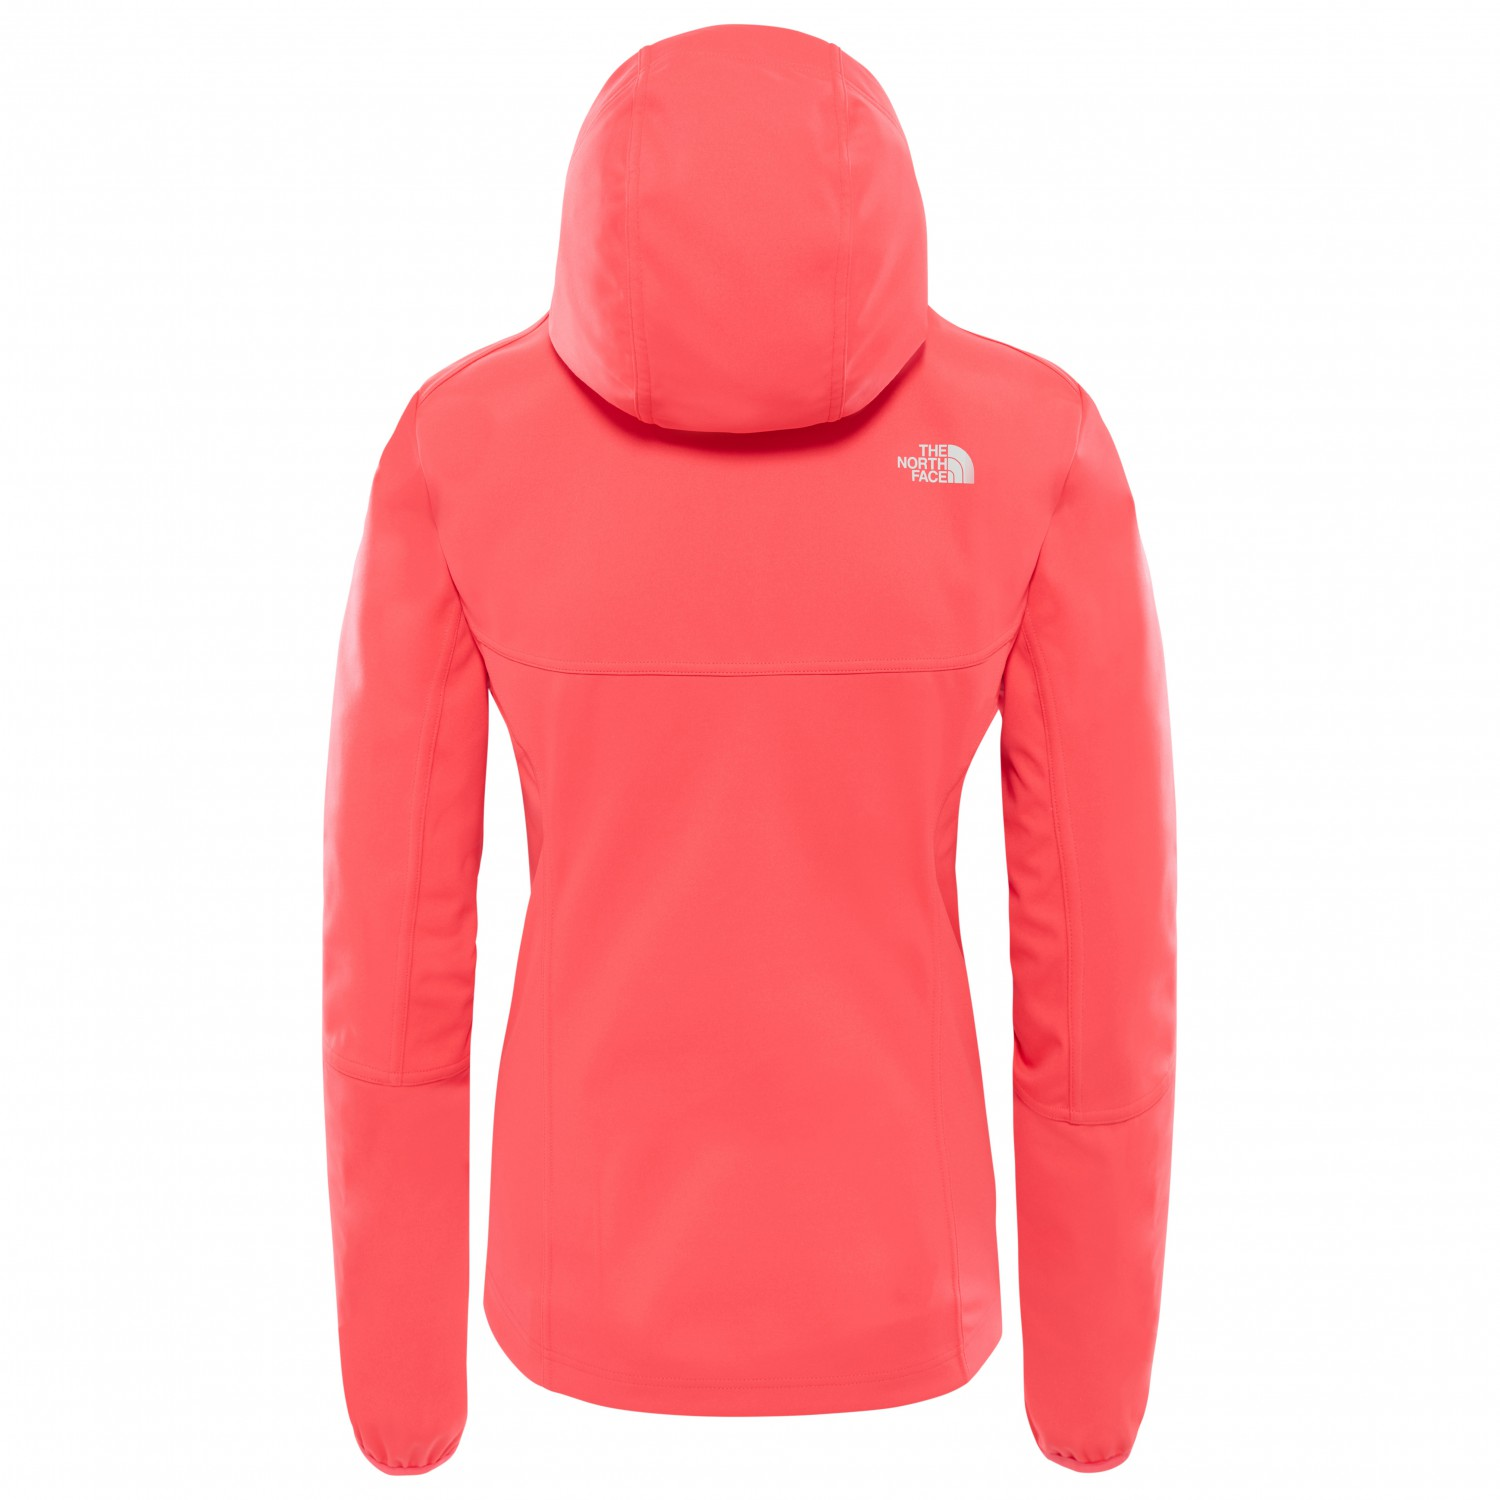 The Softshell Hikesteller Dames Hoodie North Face Gratis pAnqwvrpB